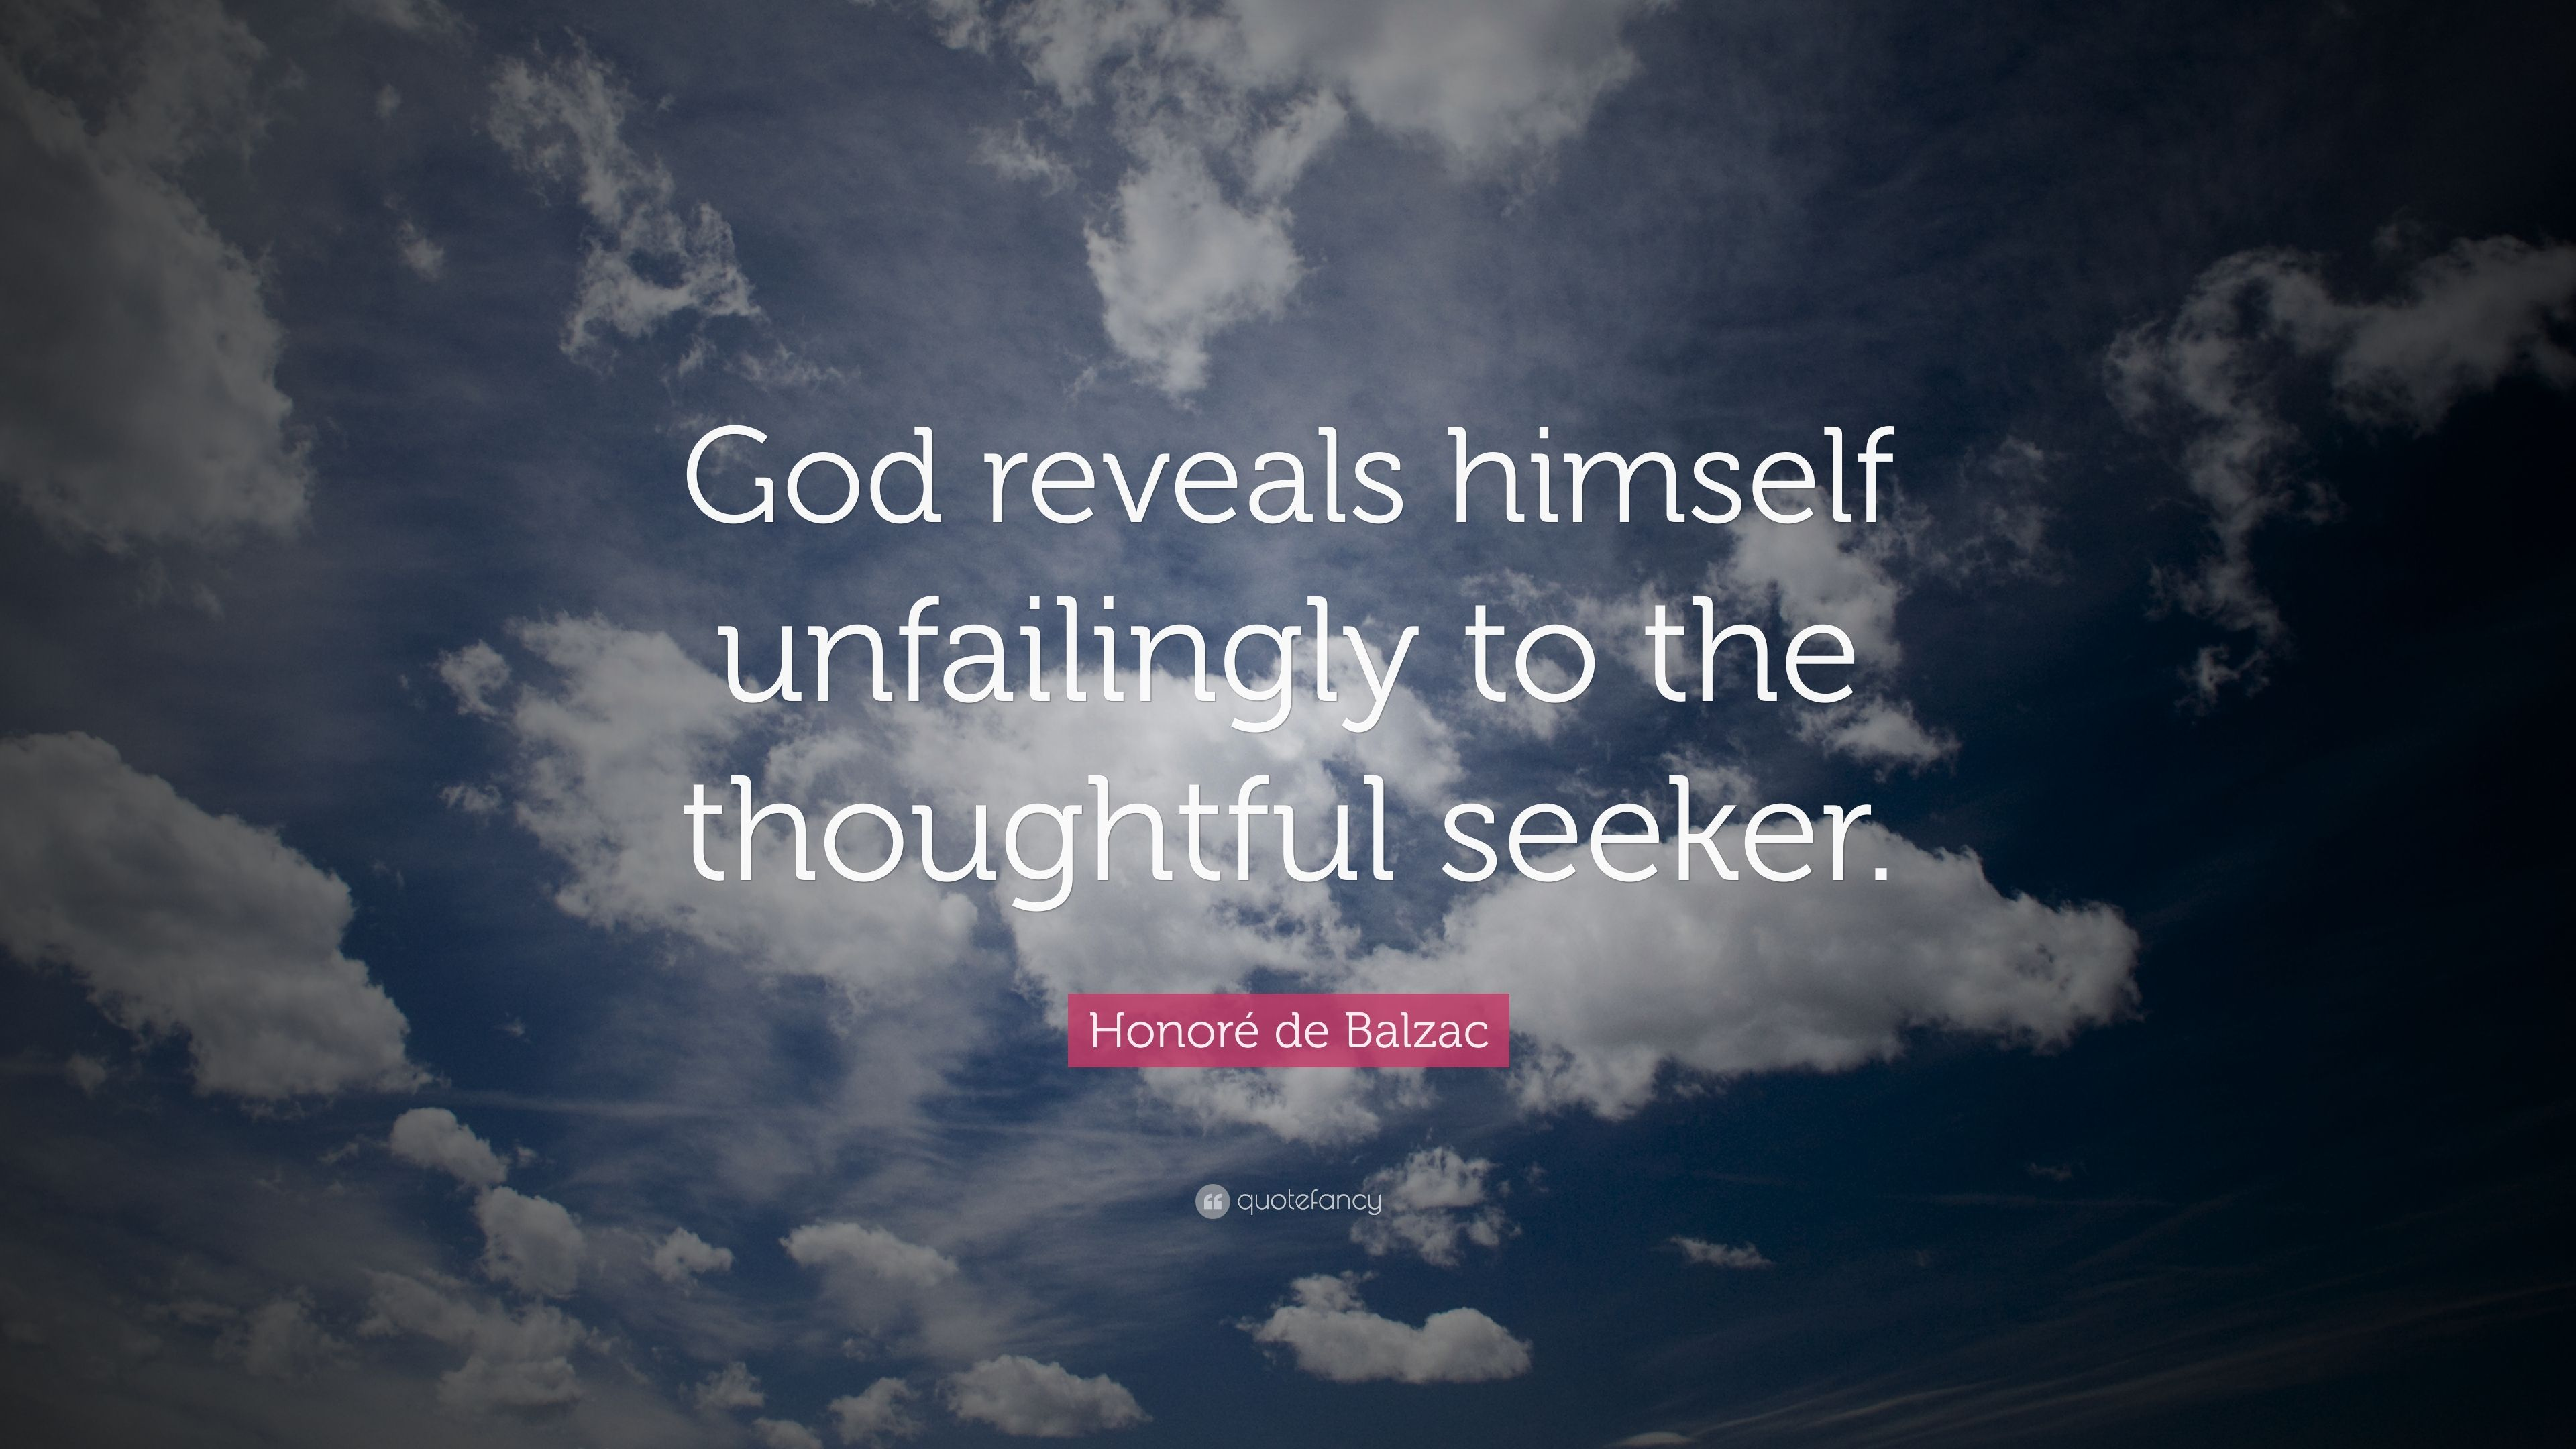 Image result for Image of God revealing himself to someone